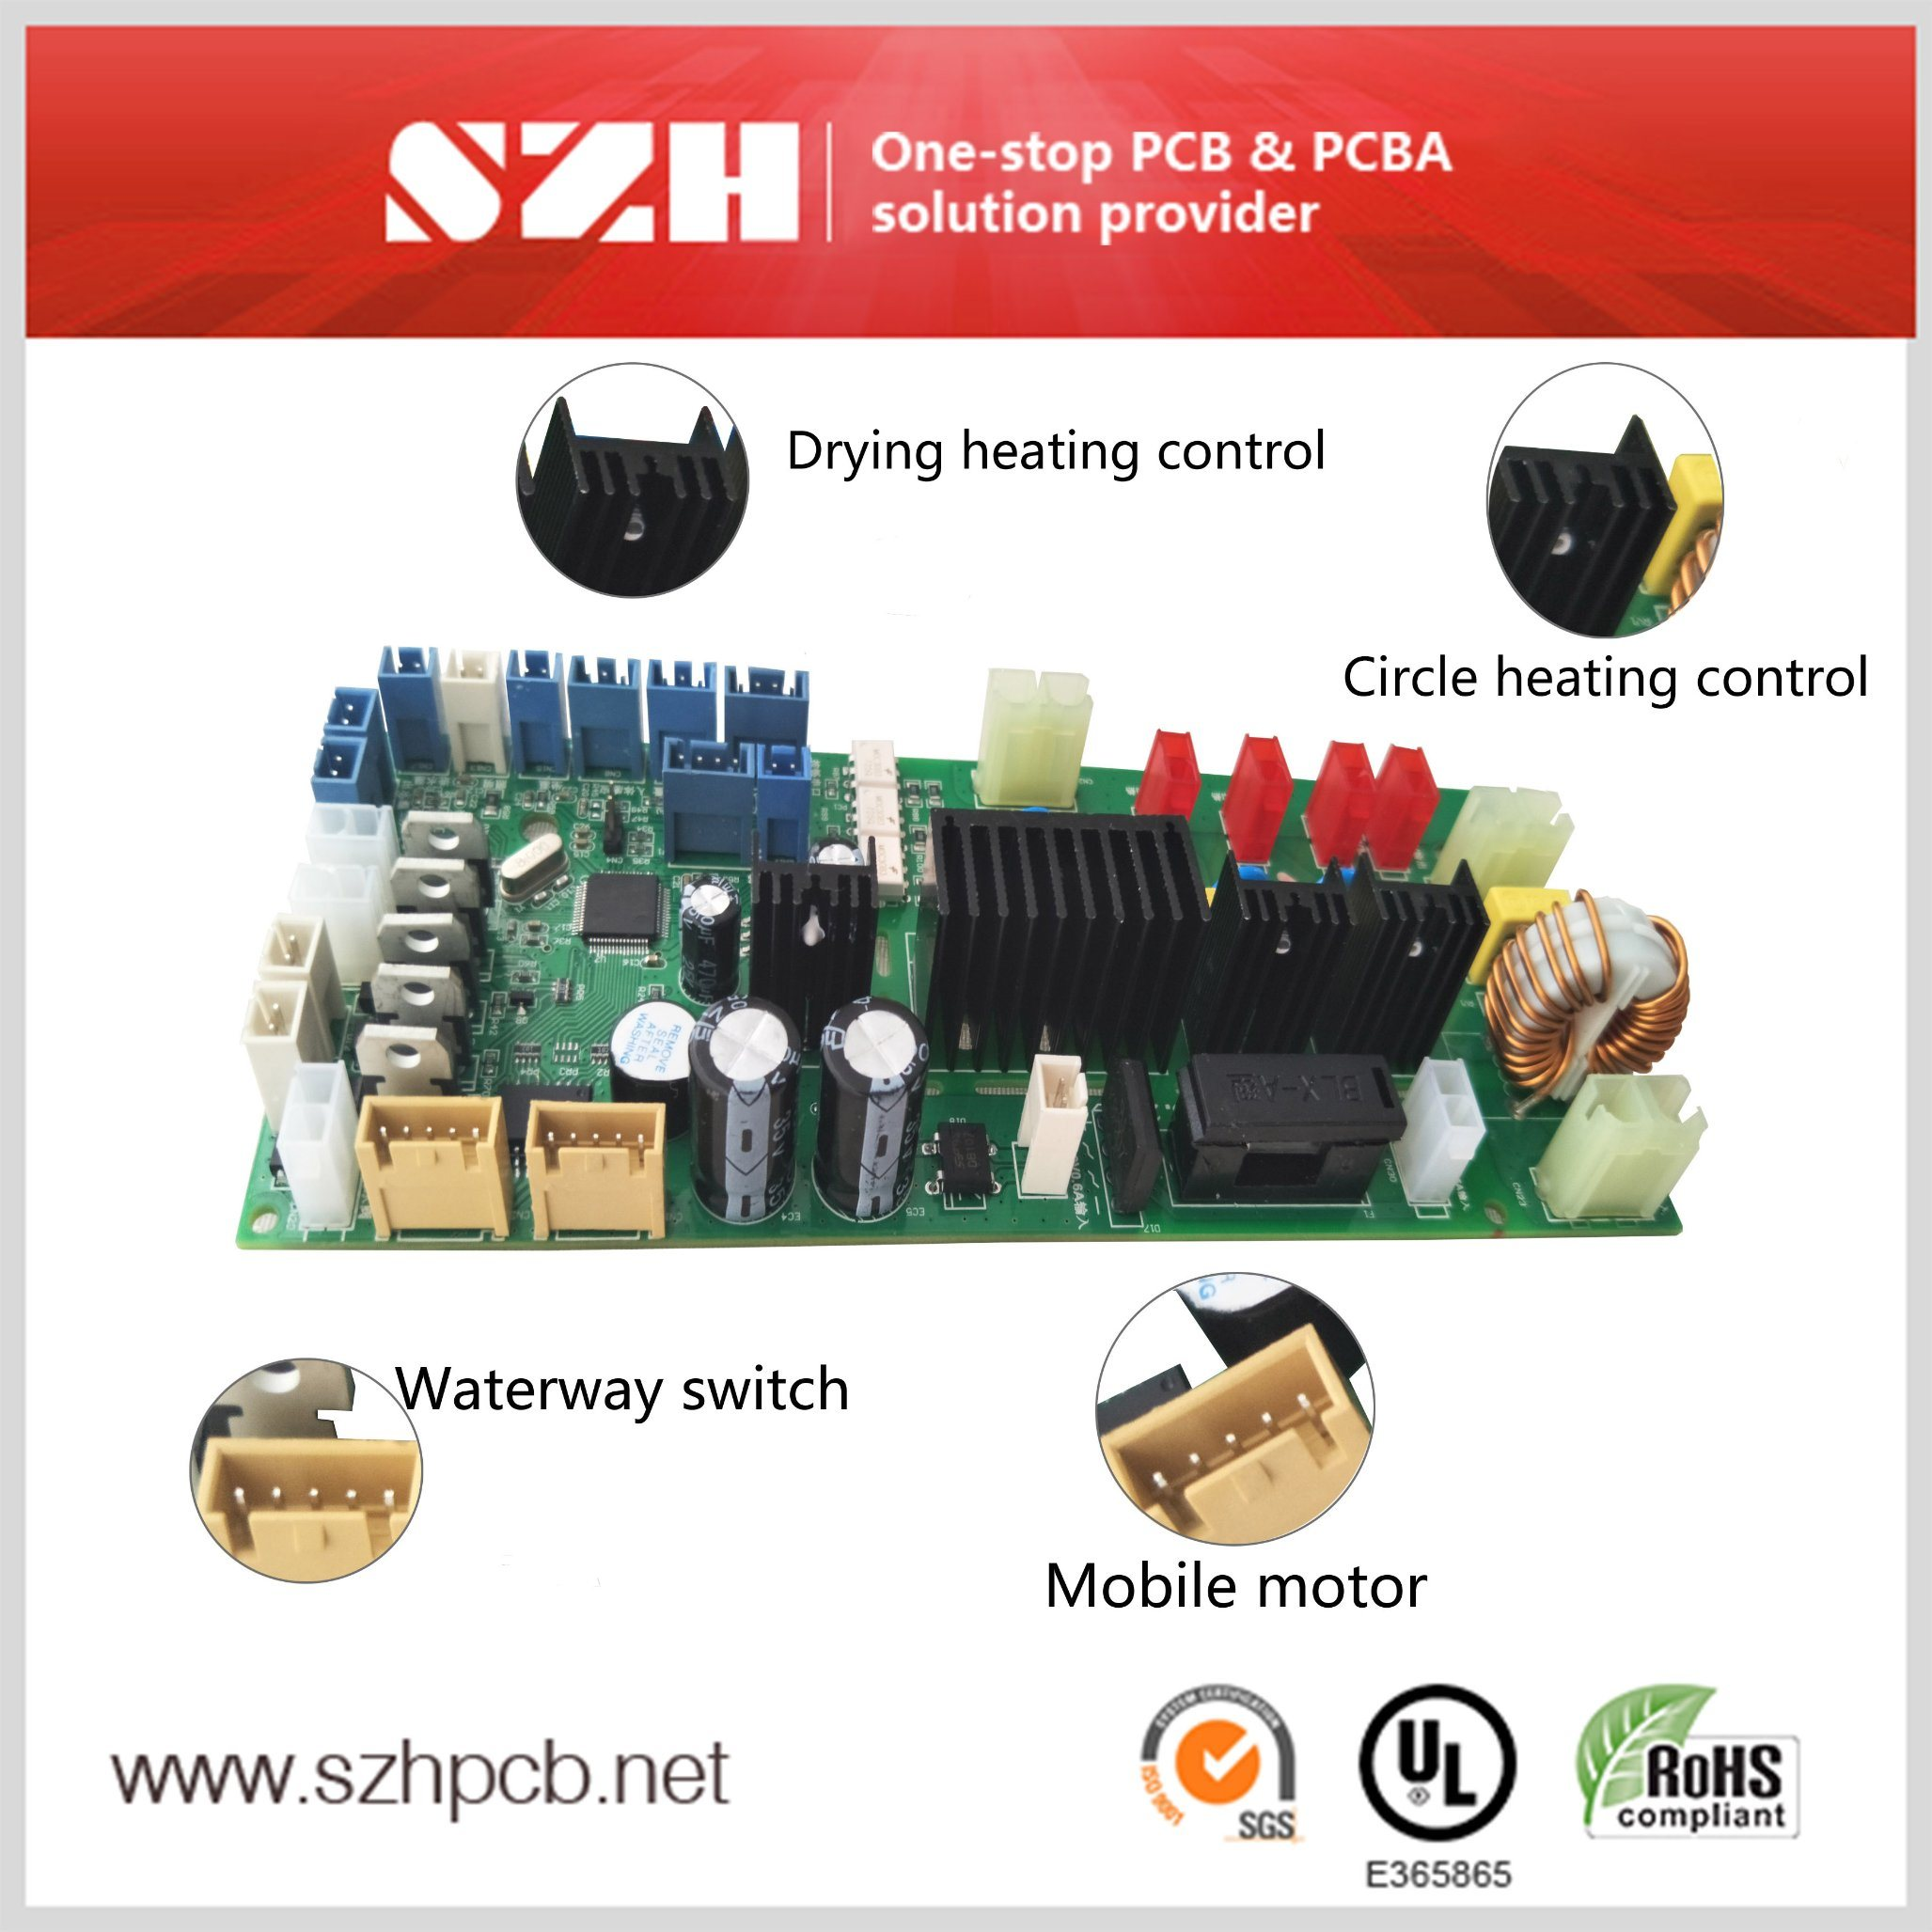 Wholesale Printed Circuit Board Assembly Buy Reliable Pcb Consists Of A High Quality Smart Bidet